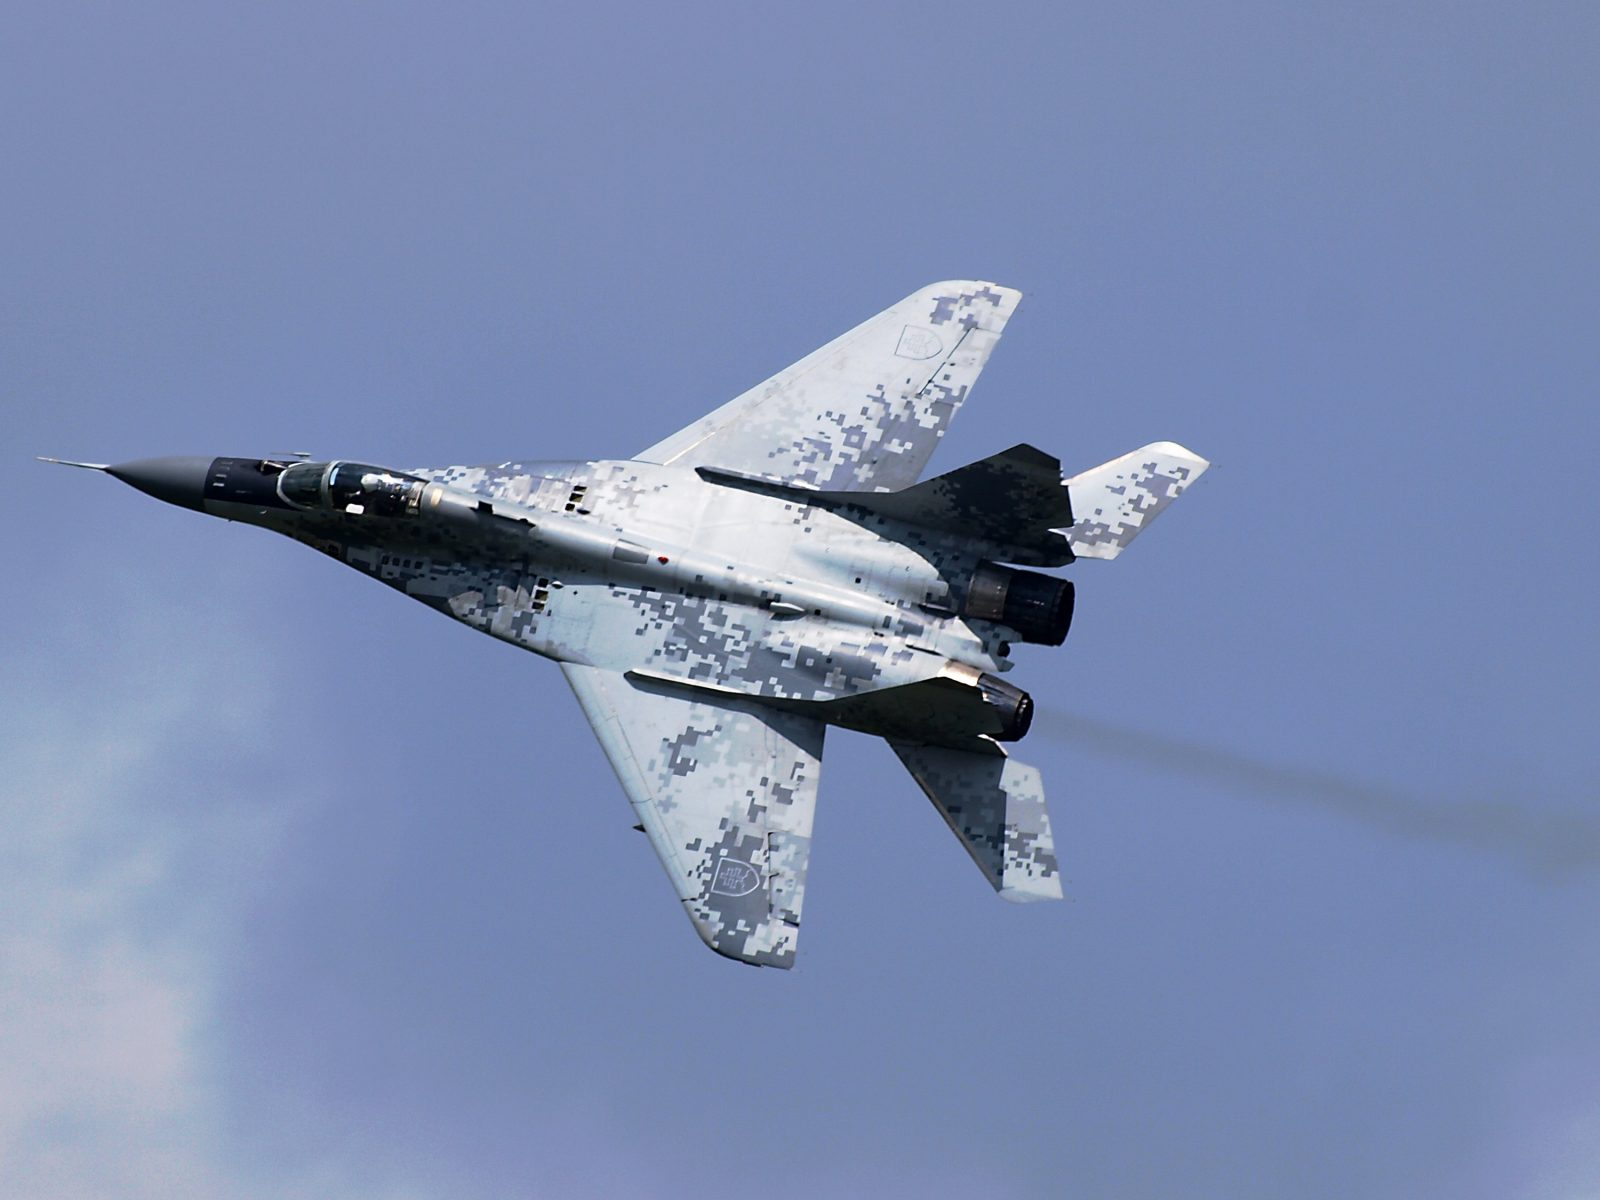 Slovak Air Force MiG-29AS Fulcrum With Live Missiles Crashes During A Training Flight